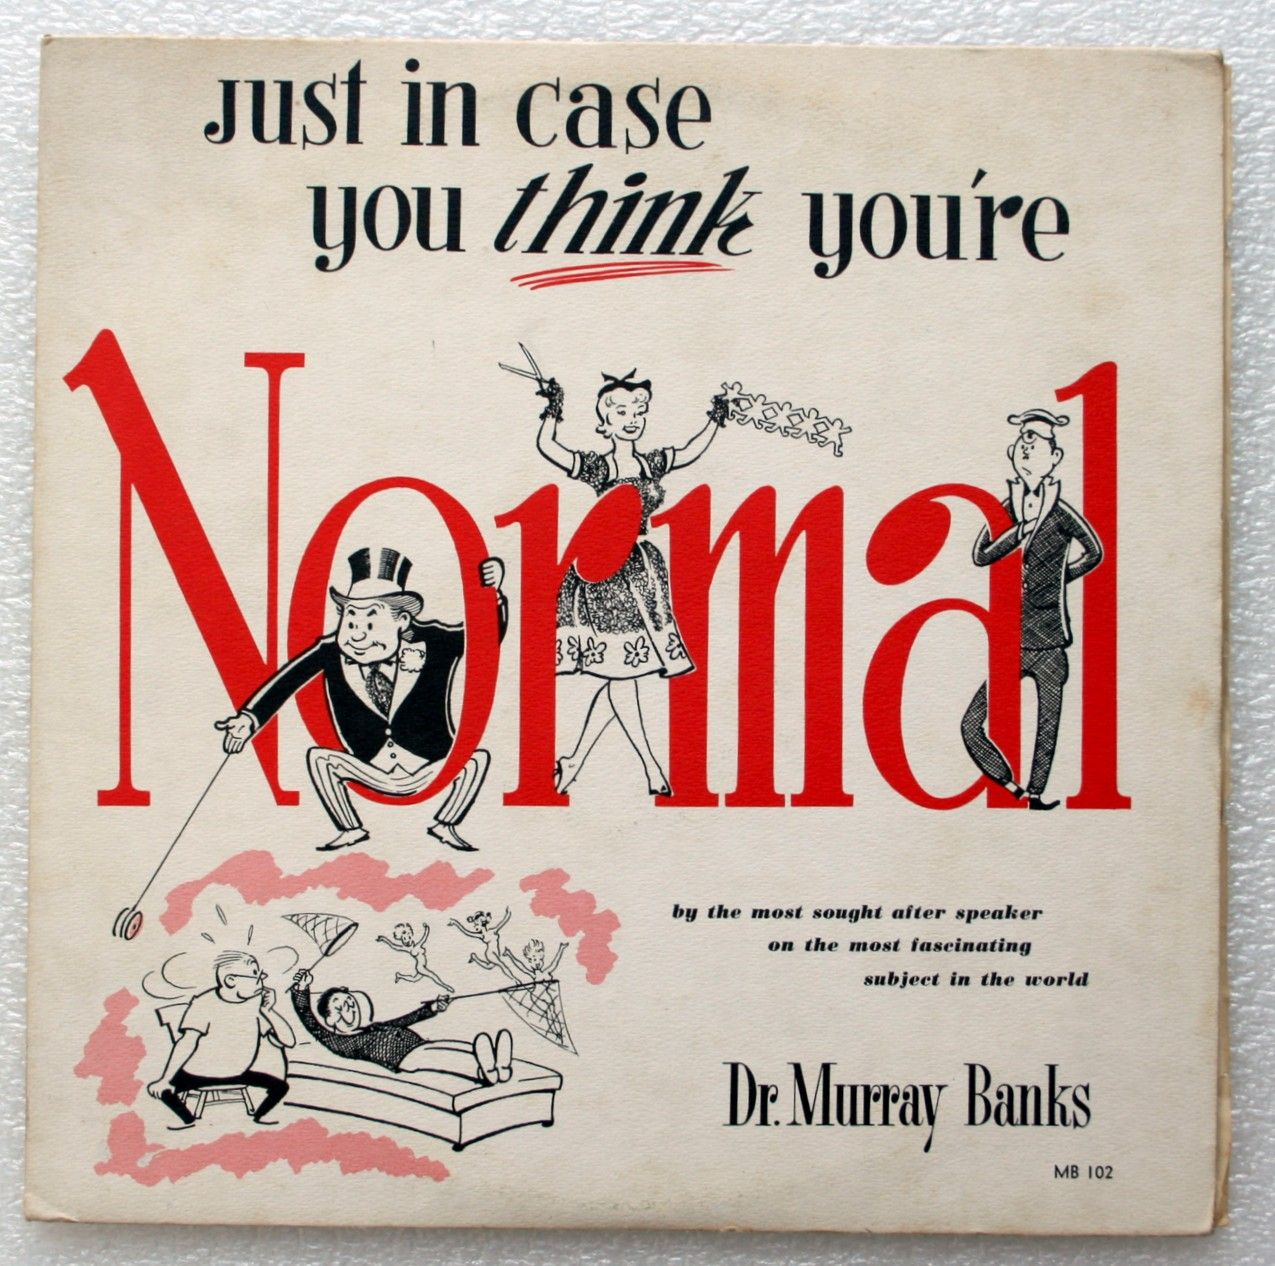 Another LP by Dr Murray Banks telling people they weren't normal. Releasing LP's like this one wasn't normal either.